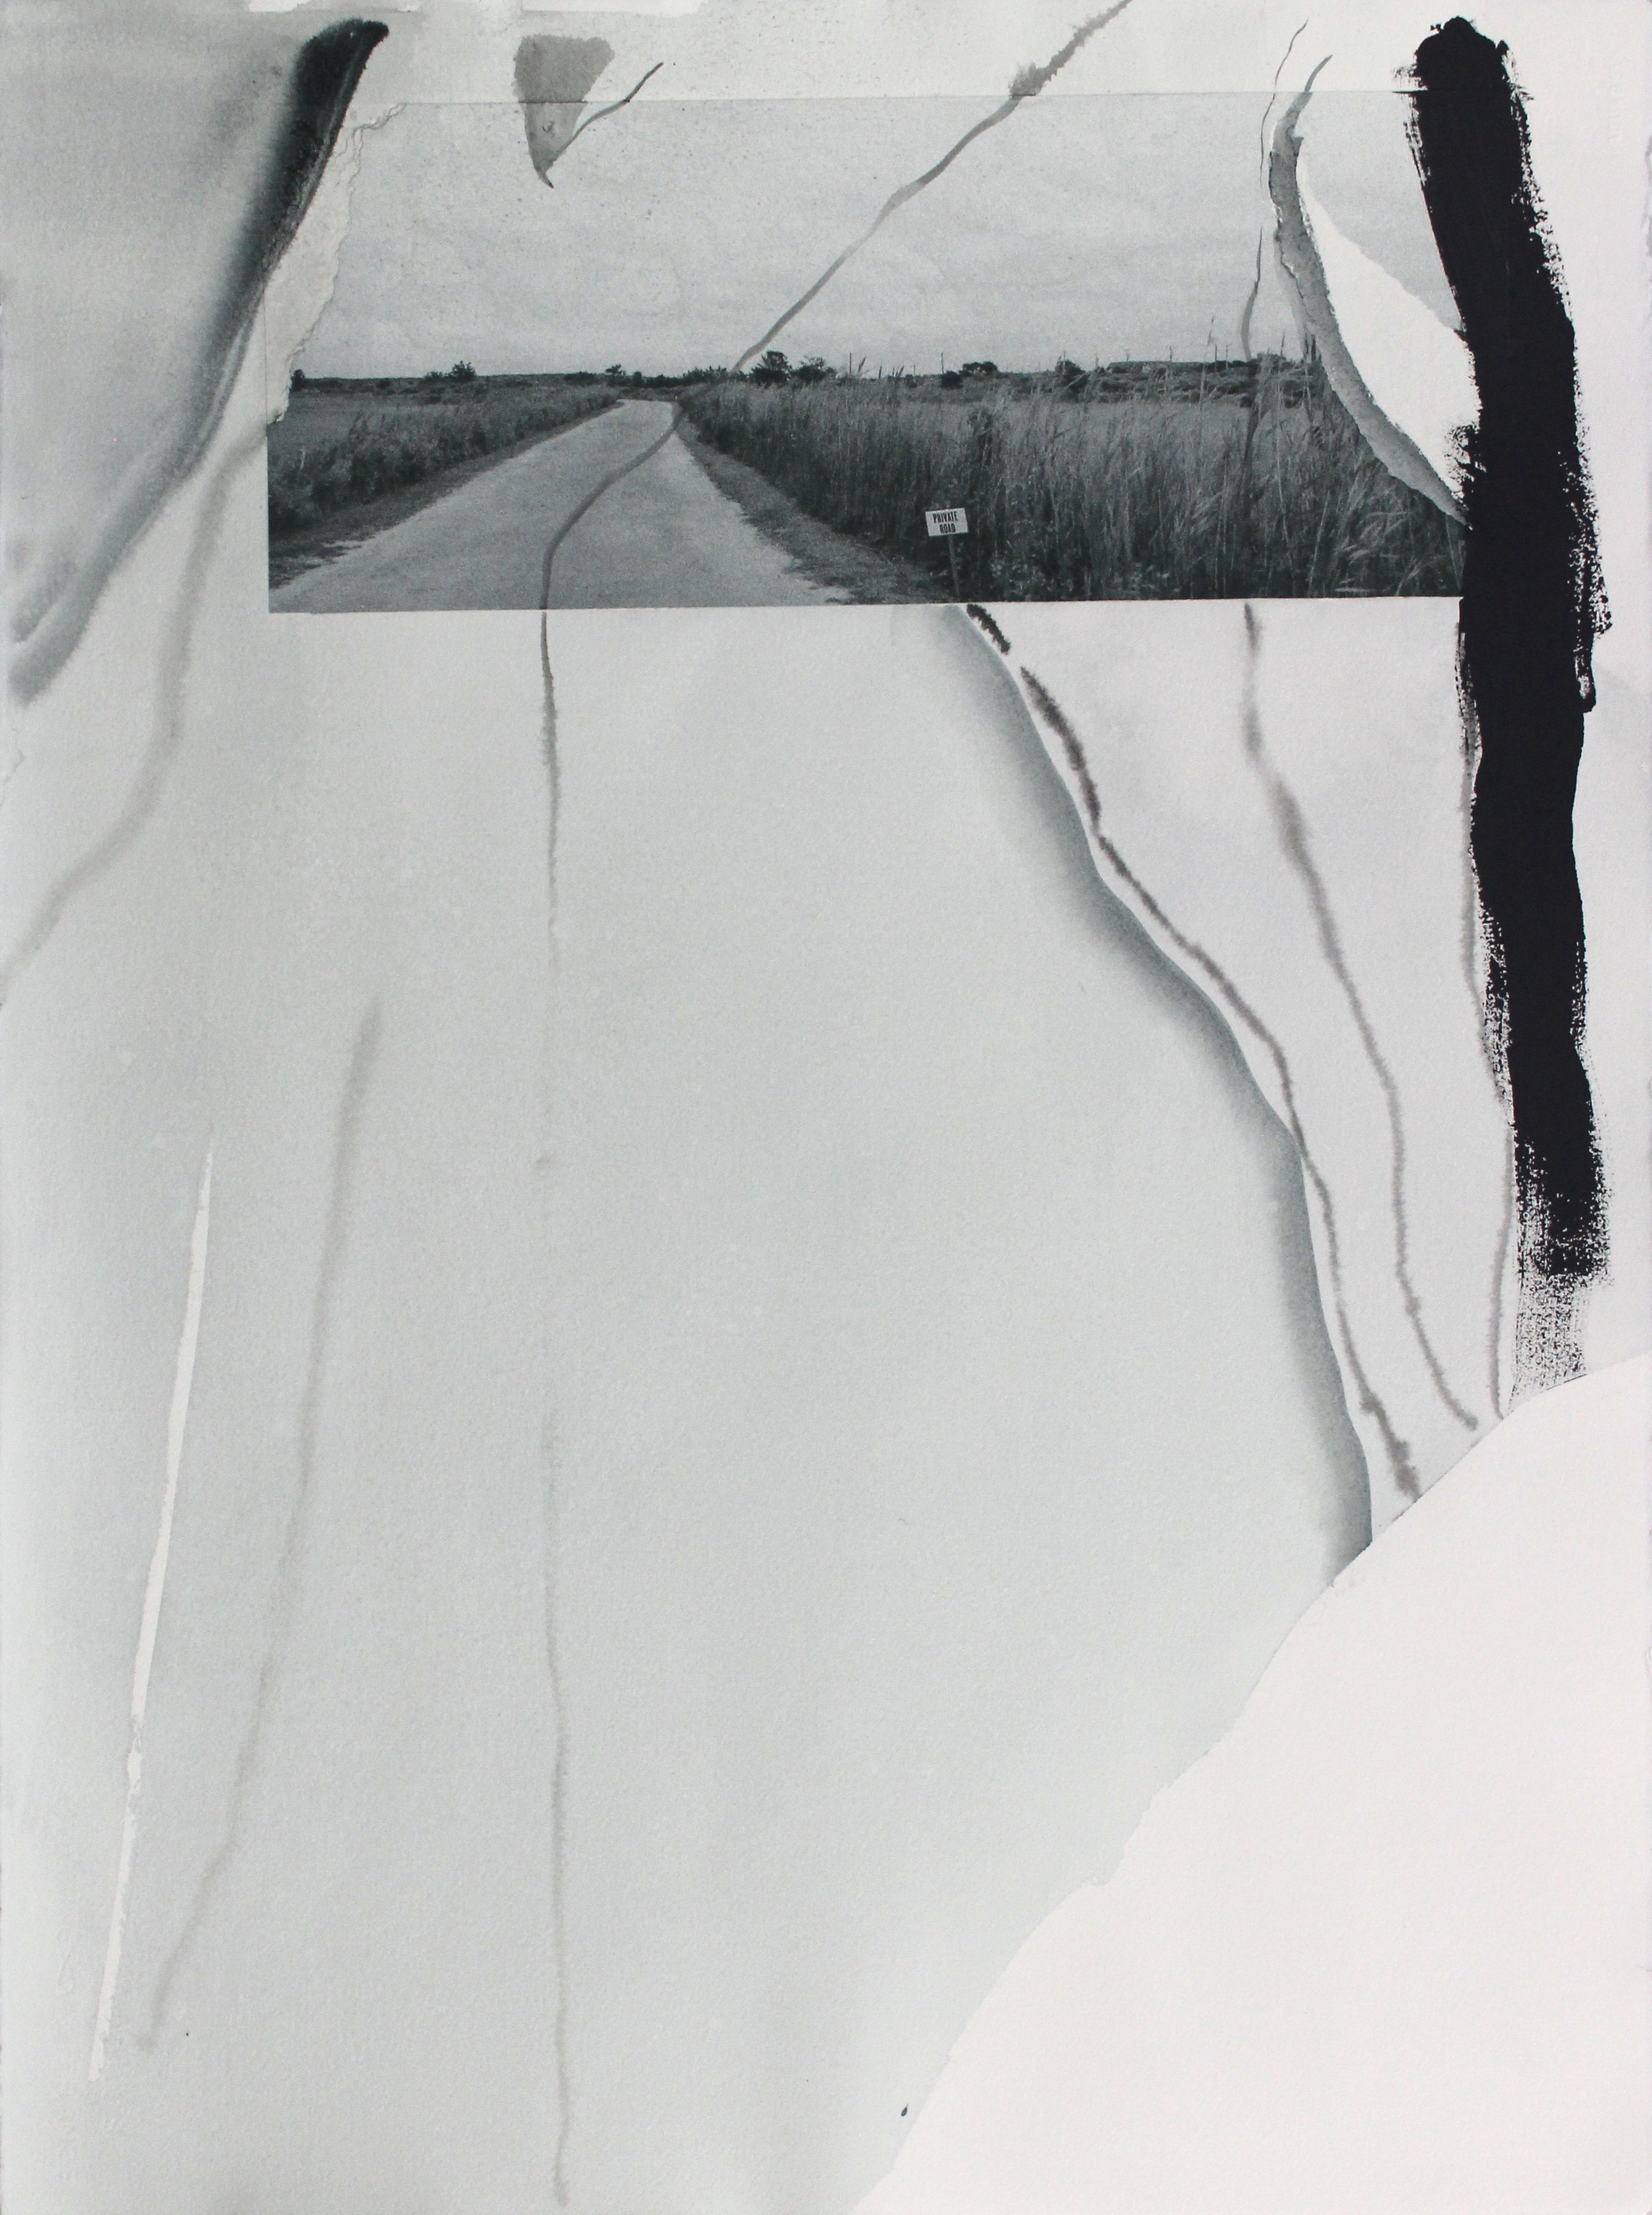 Traveling on My Private Road II, 2016, archival photographic print, watercolor, ink, gesso, 30 x 22 in (framed), $2,300